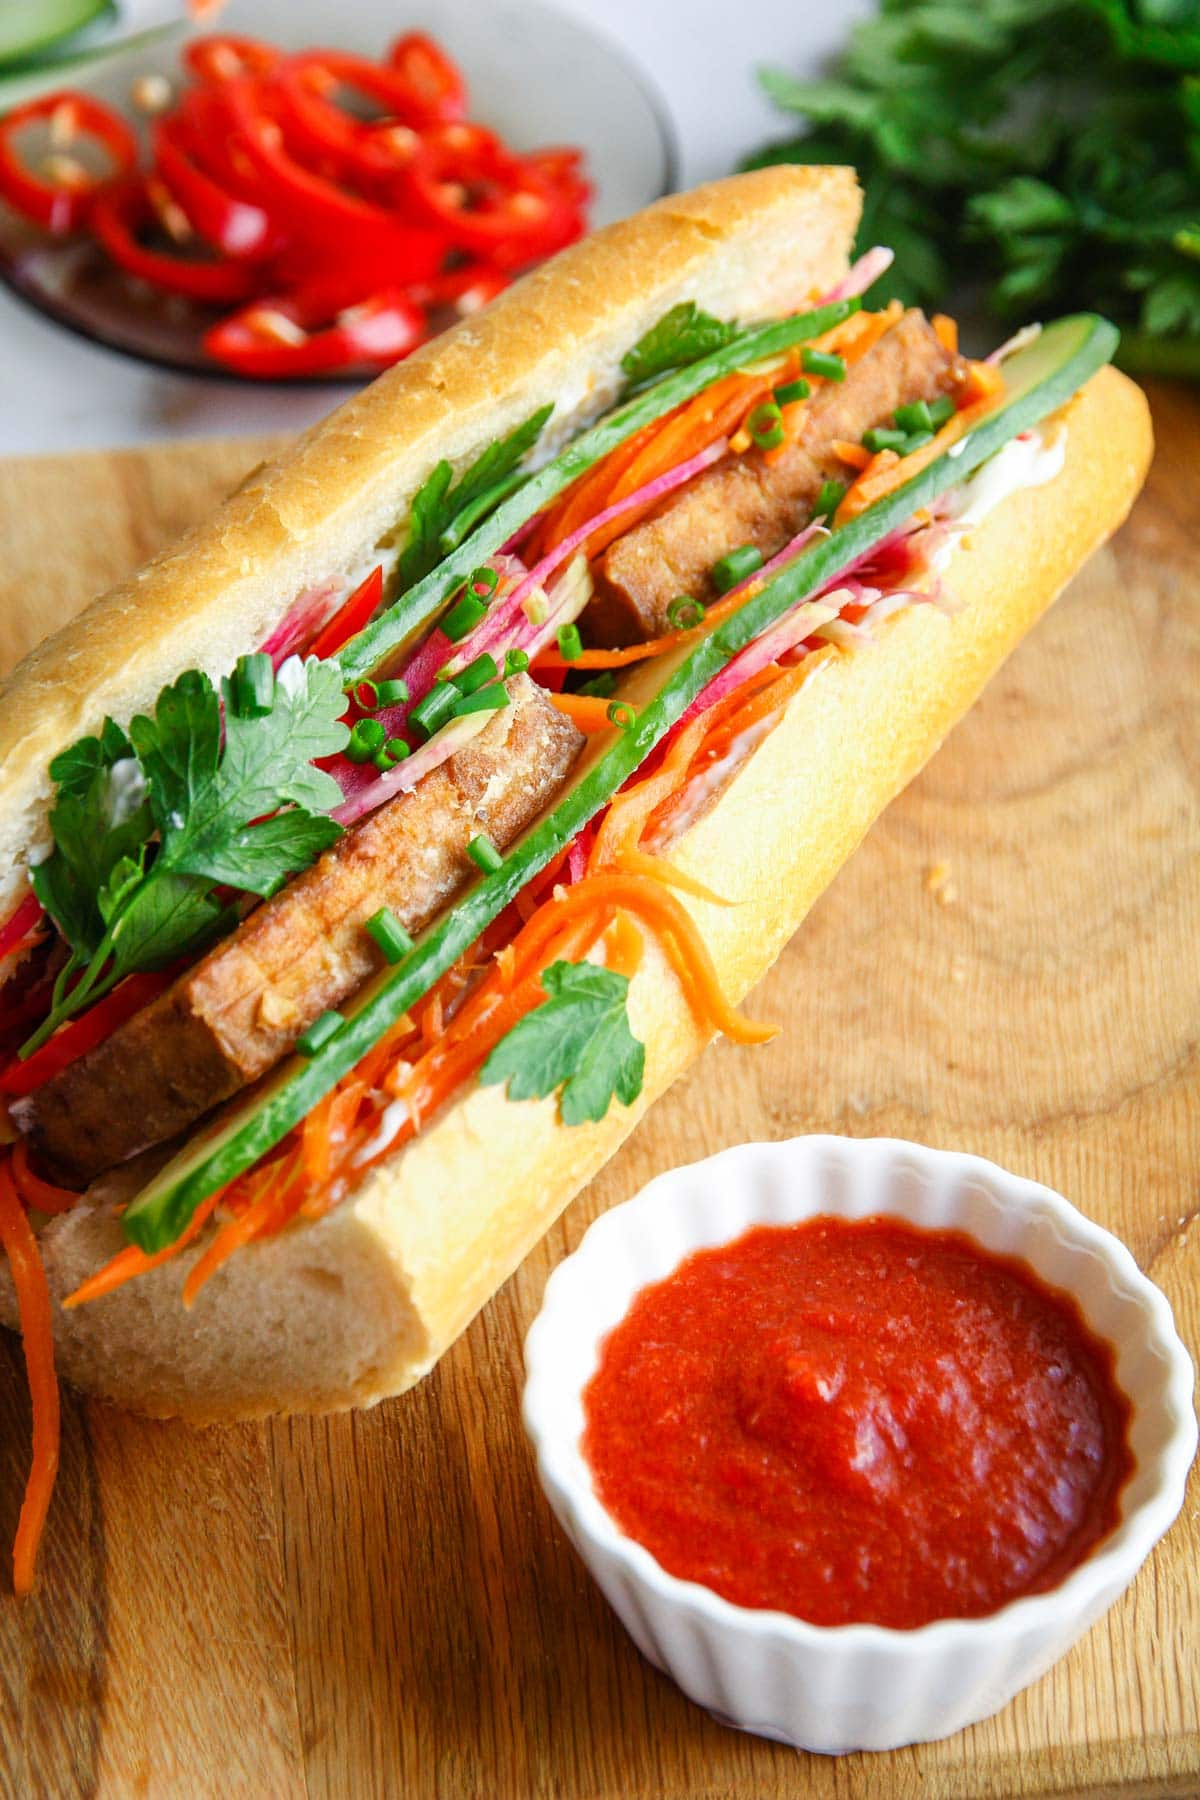 A healthy vegan banh mi sandwich made with tofu and fresh vegetables and a sriracha dipping sauce.